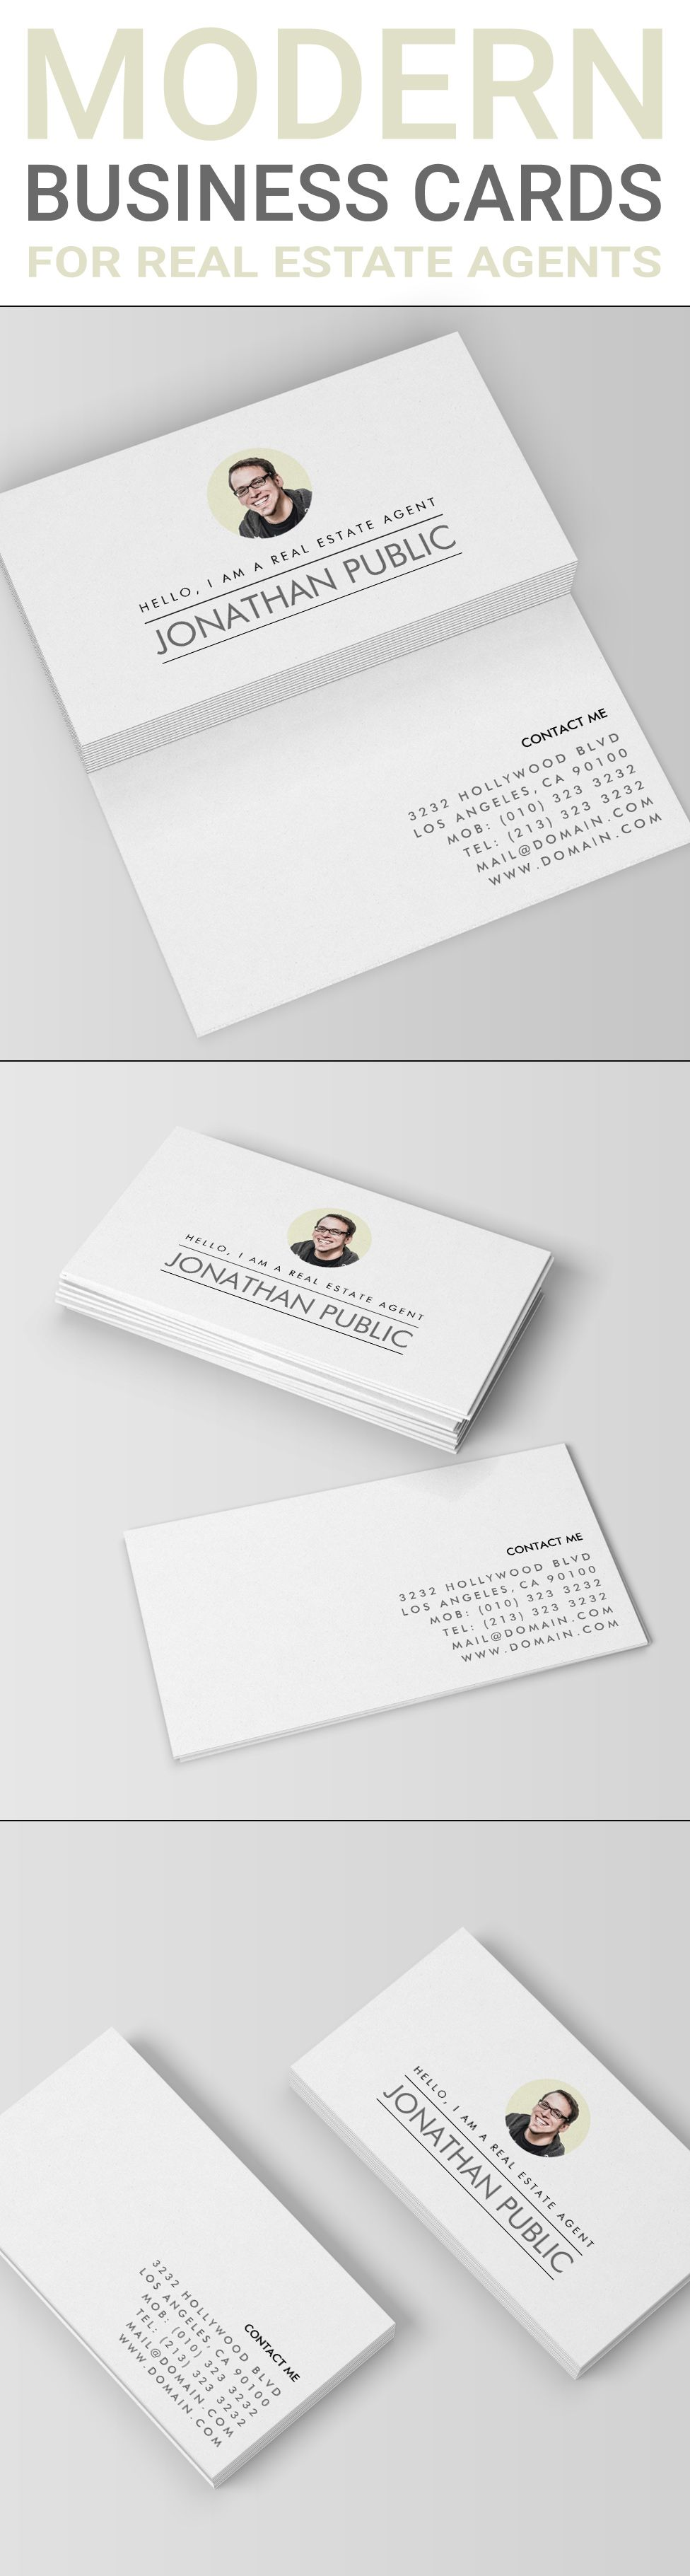 Modern simplistic business cards design featuring your personal ...